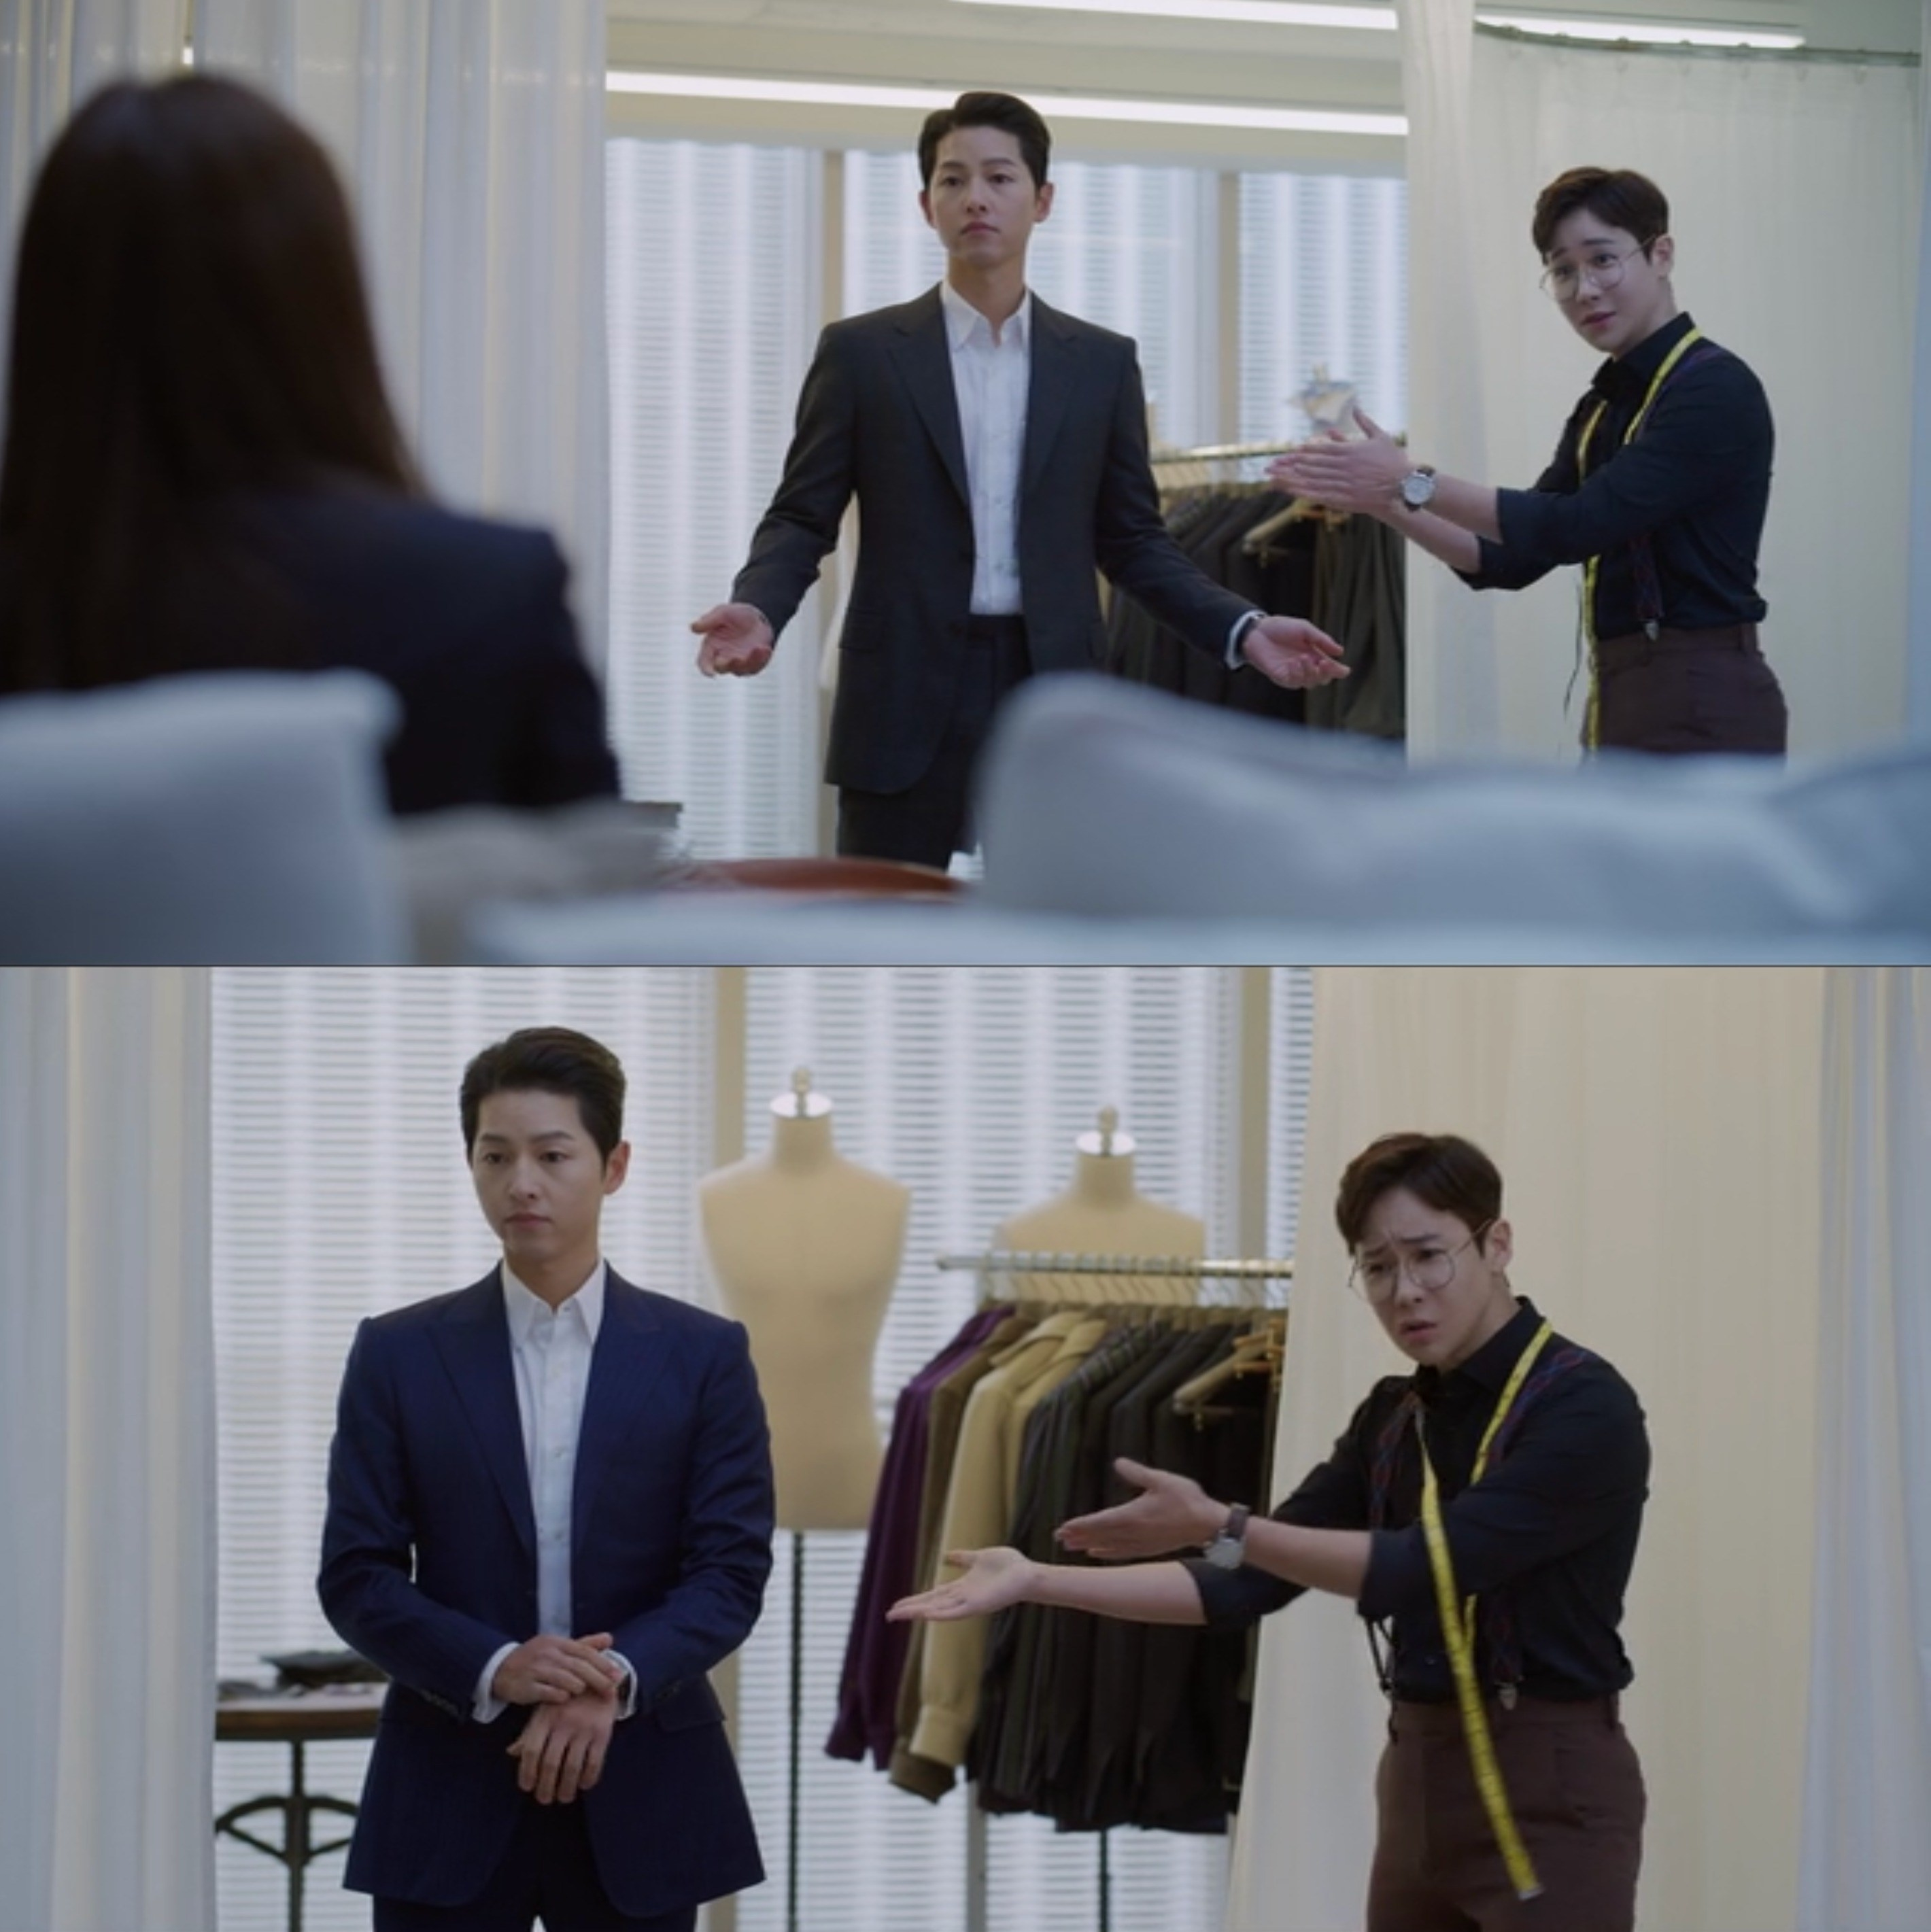 A tailor applauds Vincenzo trying a new suit and encourages Cha-young to applaud as well